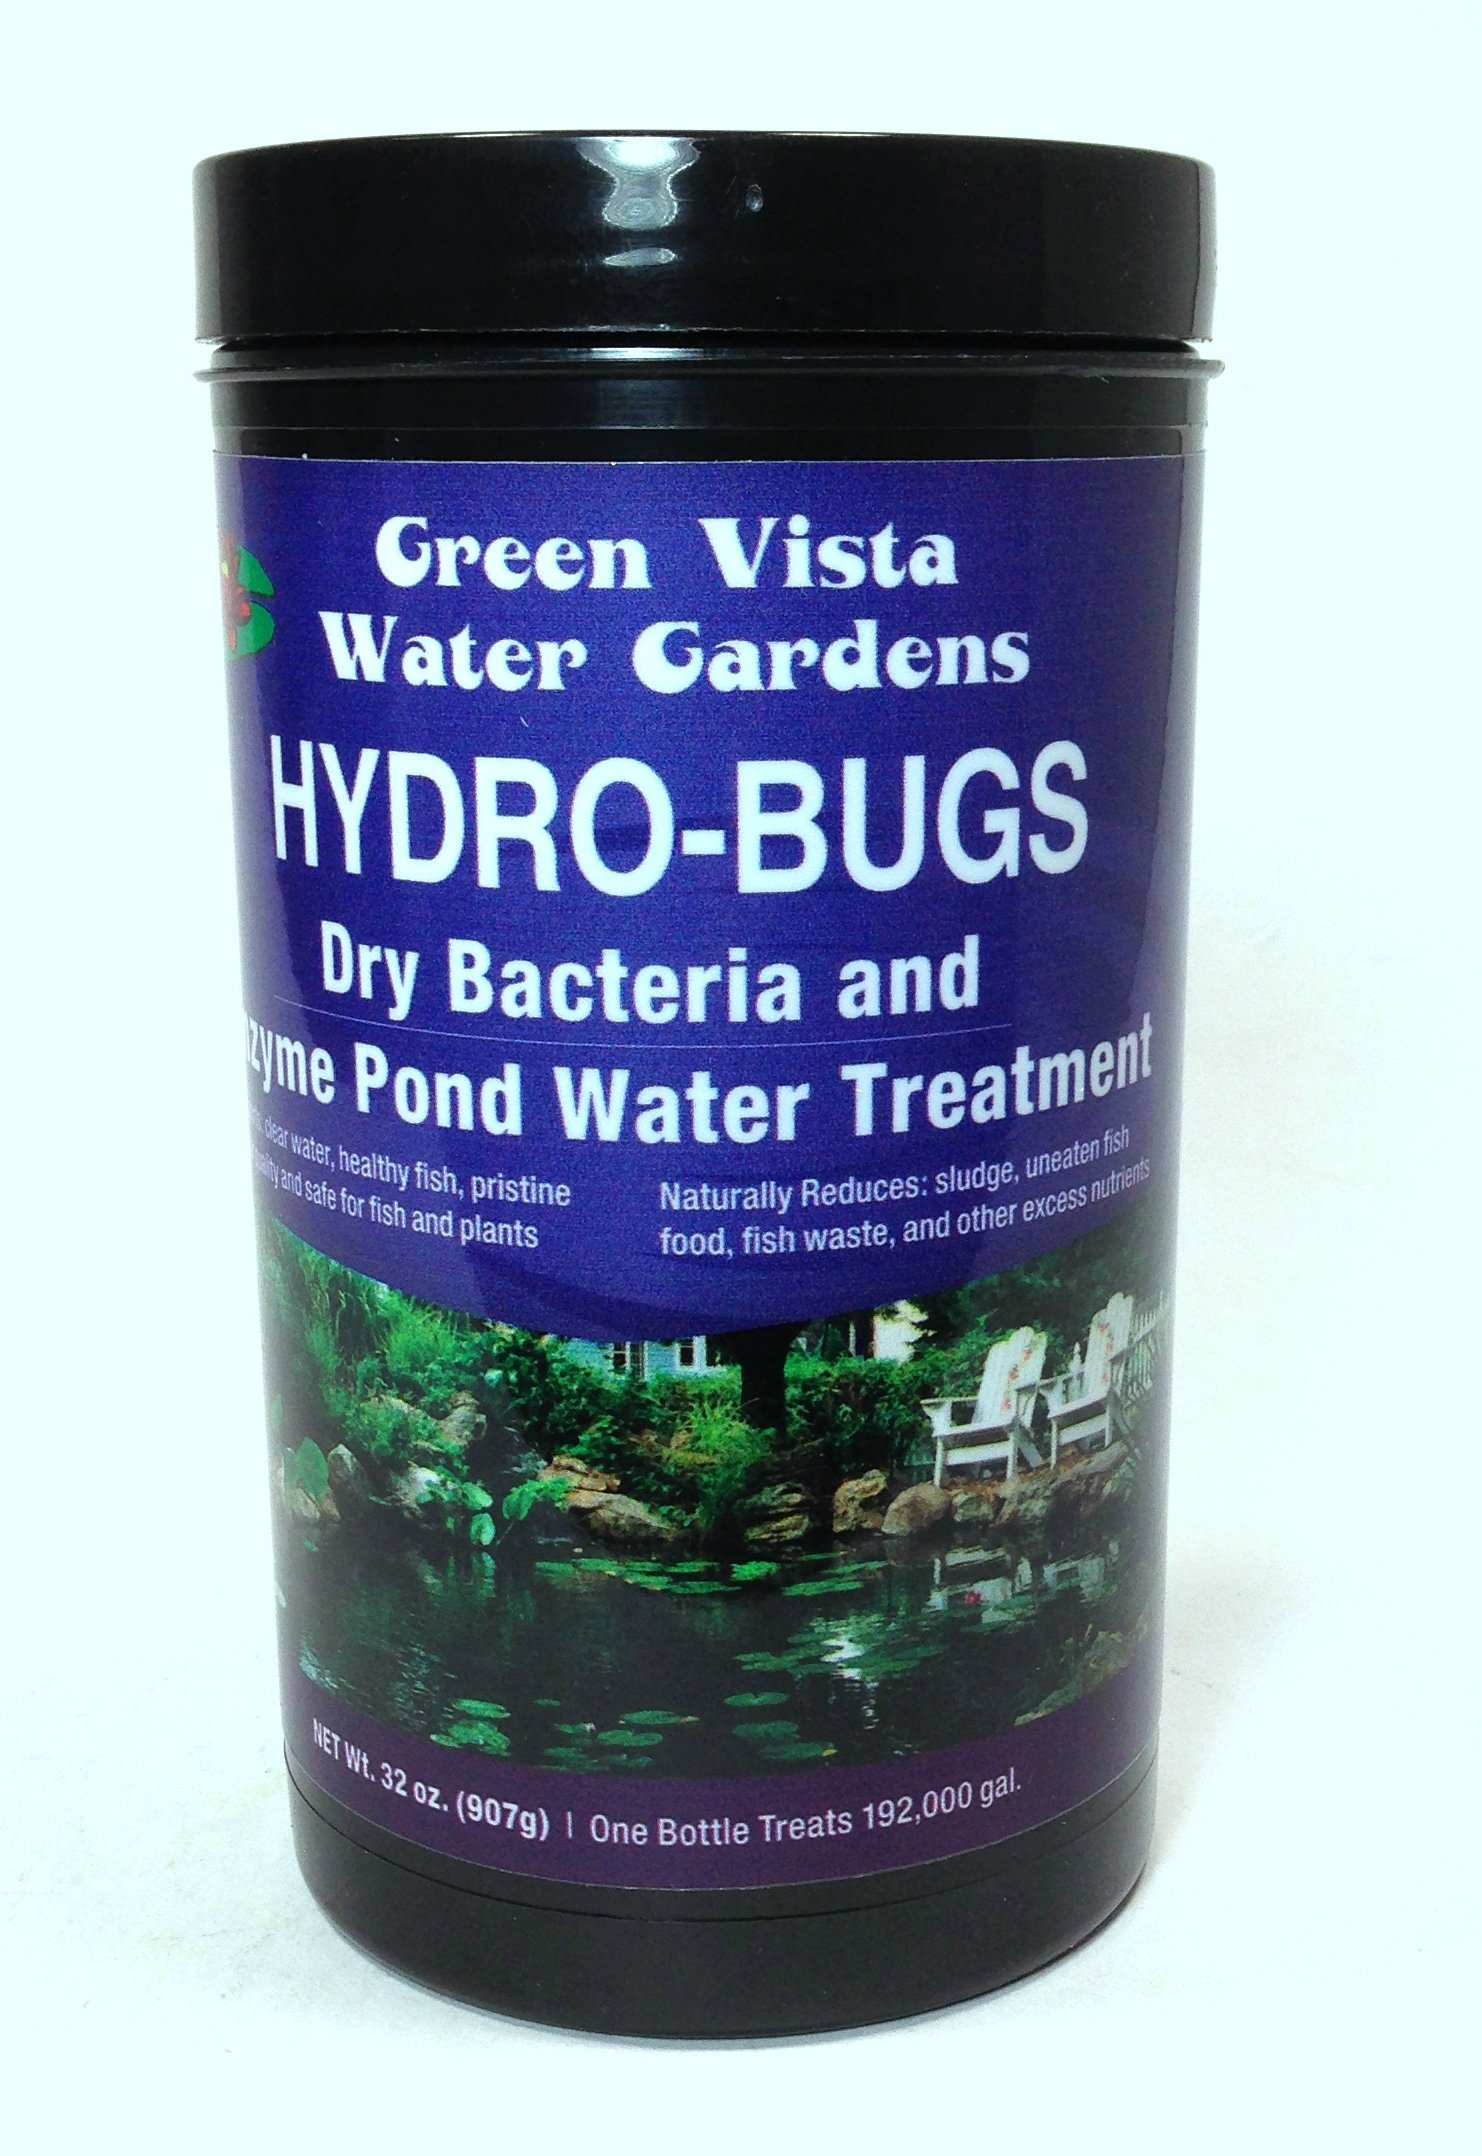 Green Vista Hydro-Bugs Dry Beneficial Bacteria - 32 Ounces - Pond Algae Control - Probiotic Treatment - Reduces Sludge, Fish Waste, Uneaten Food - Improves Water Quality and Clarity - Koi, Plant Safe